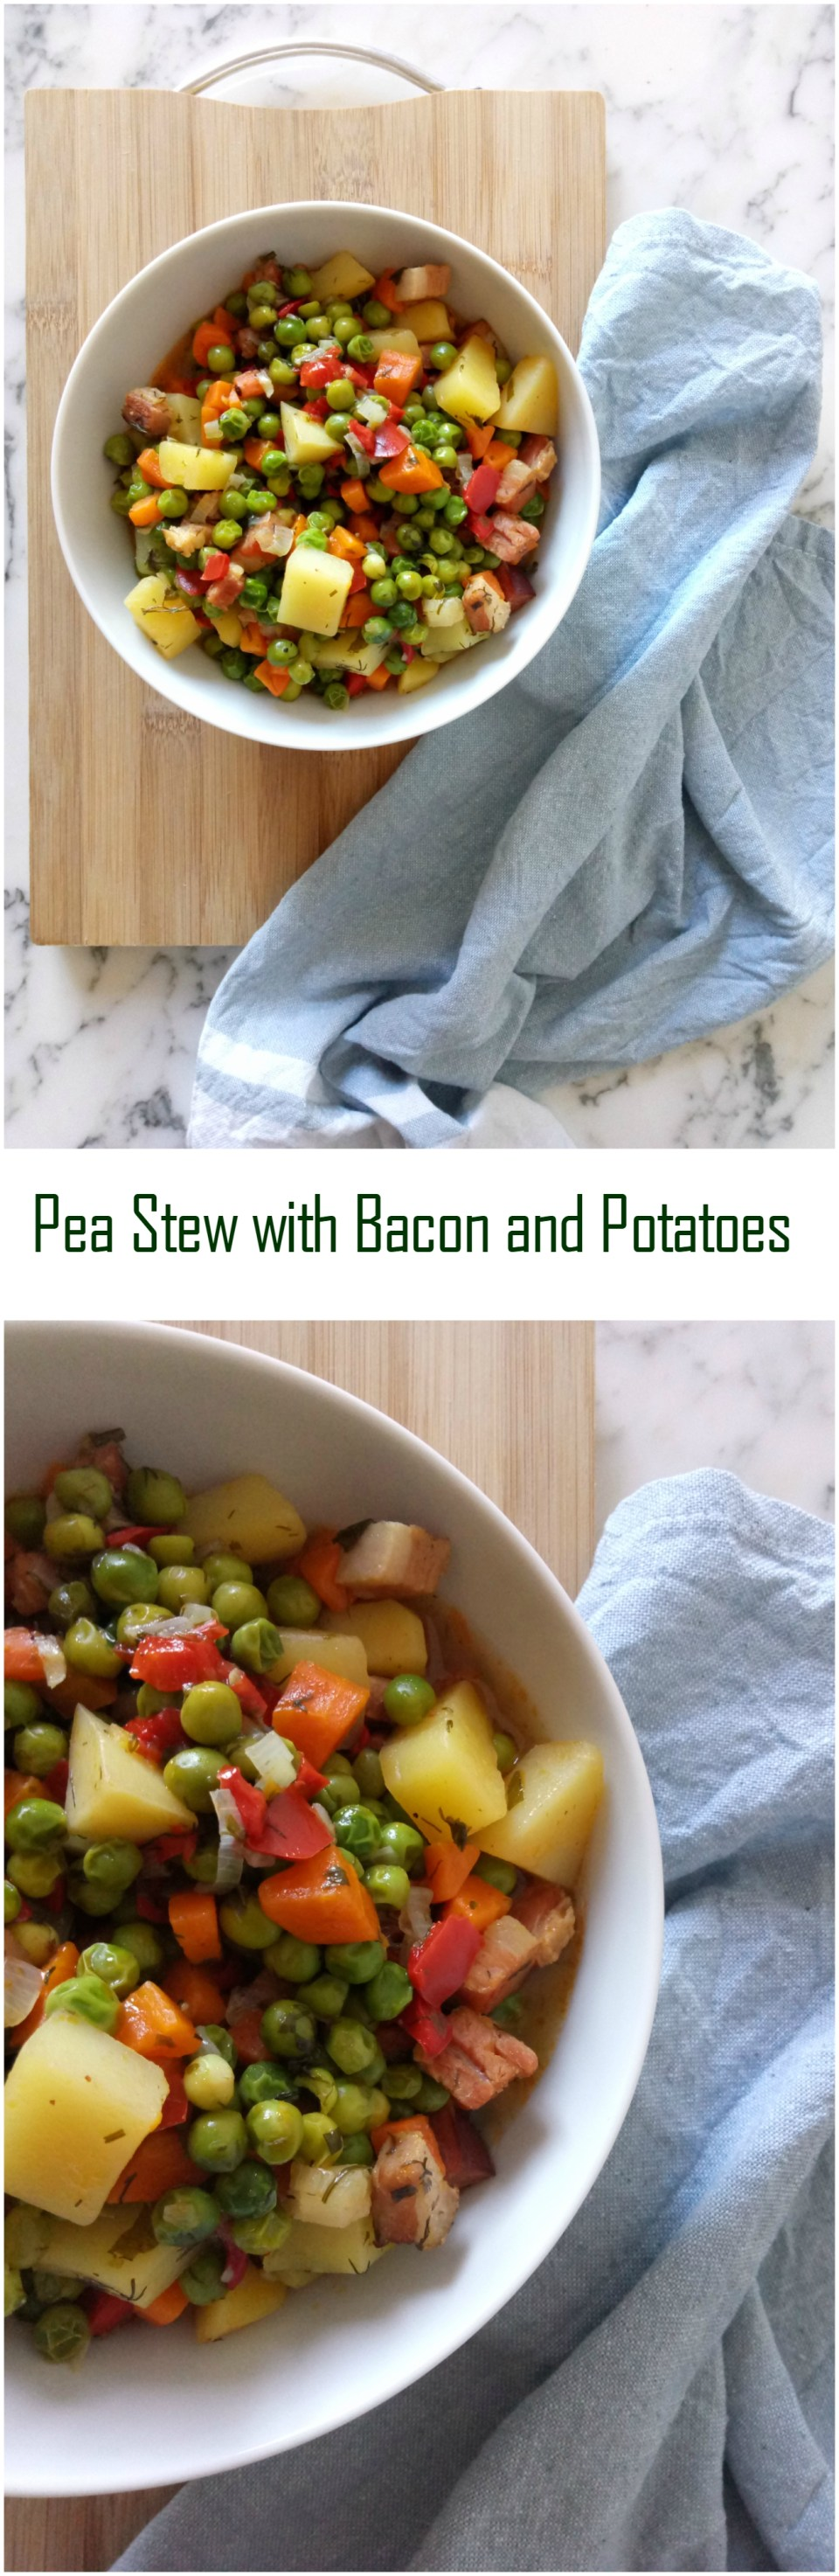 Pea Stew with Bacon and Potatoes